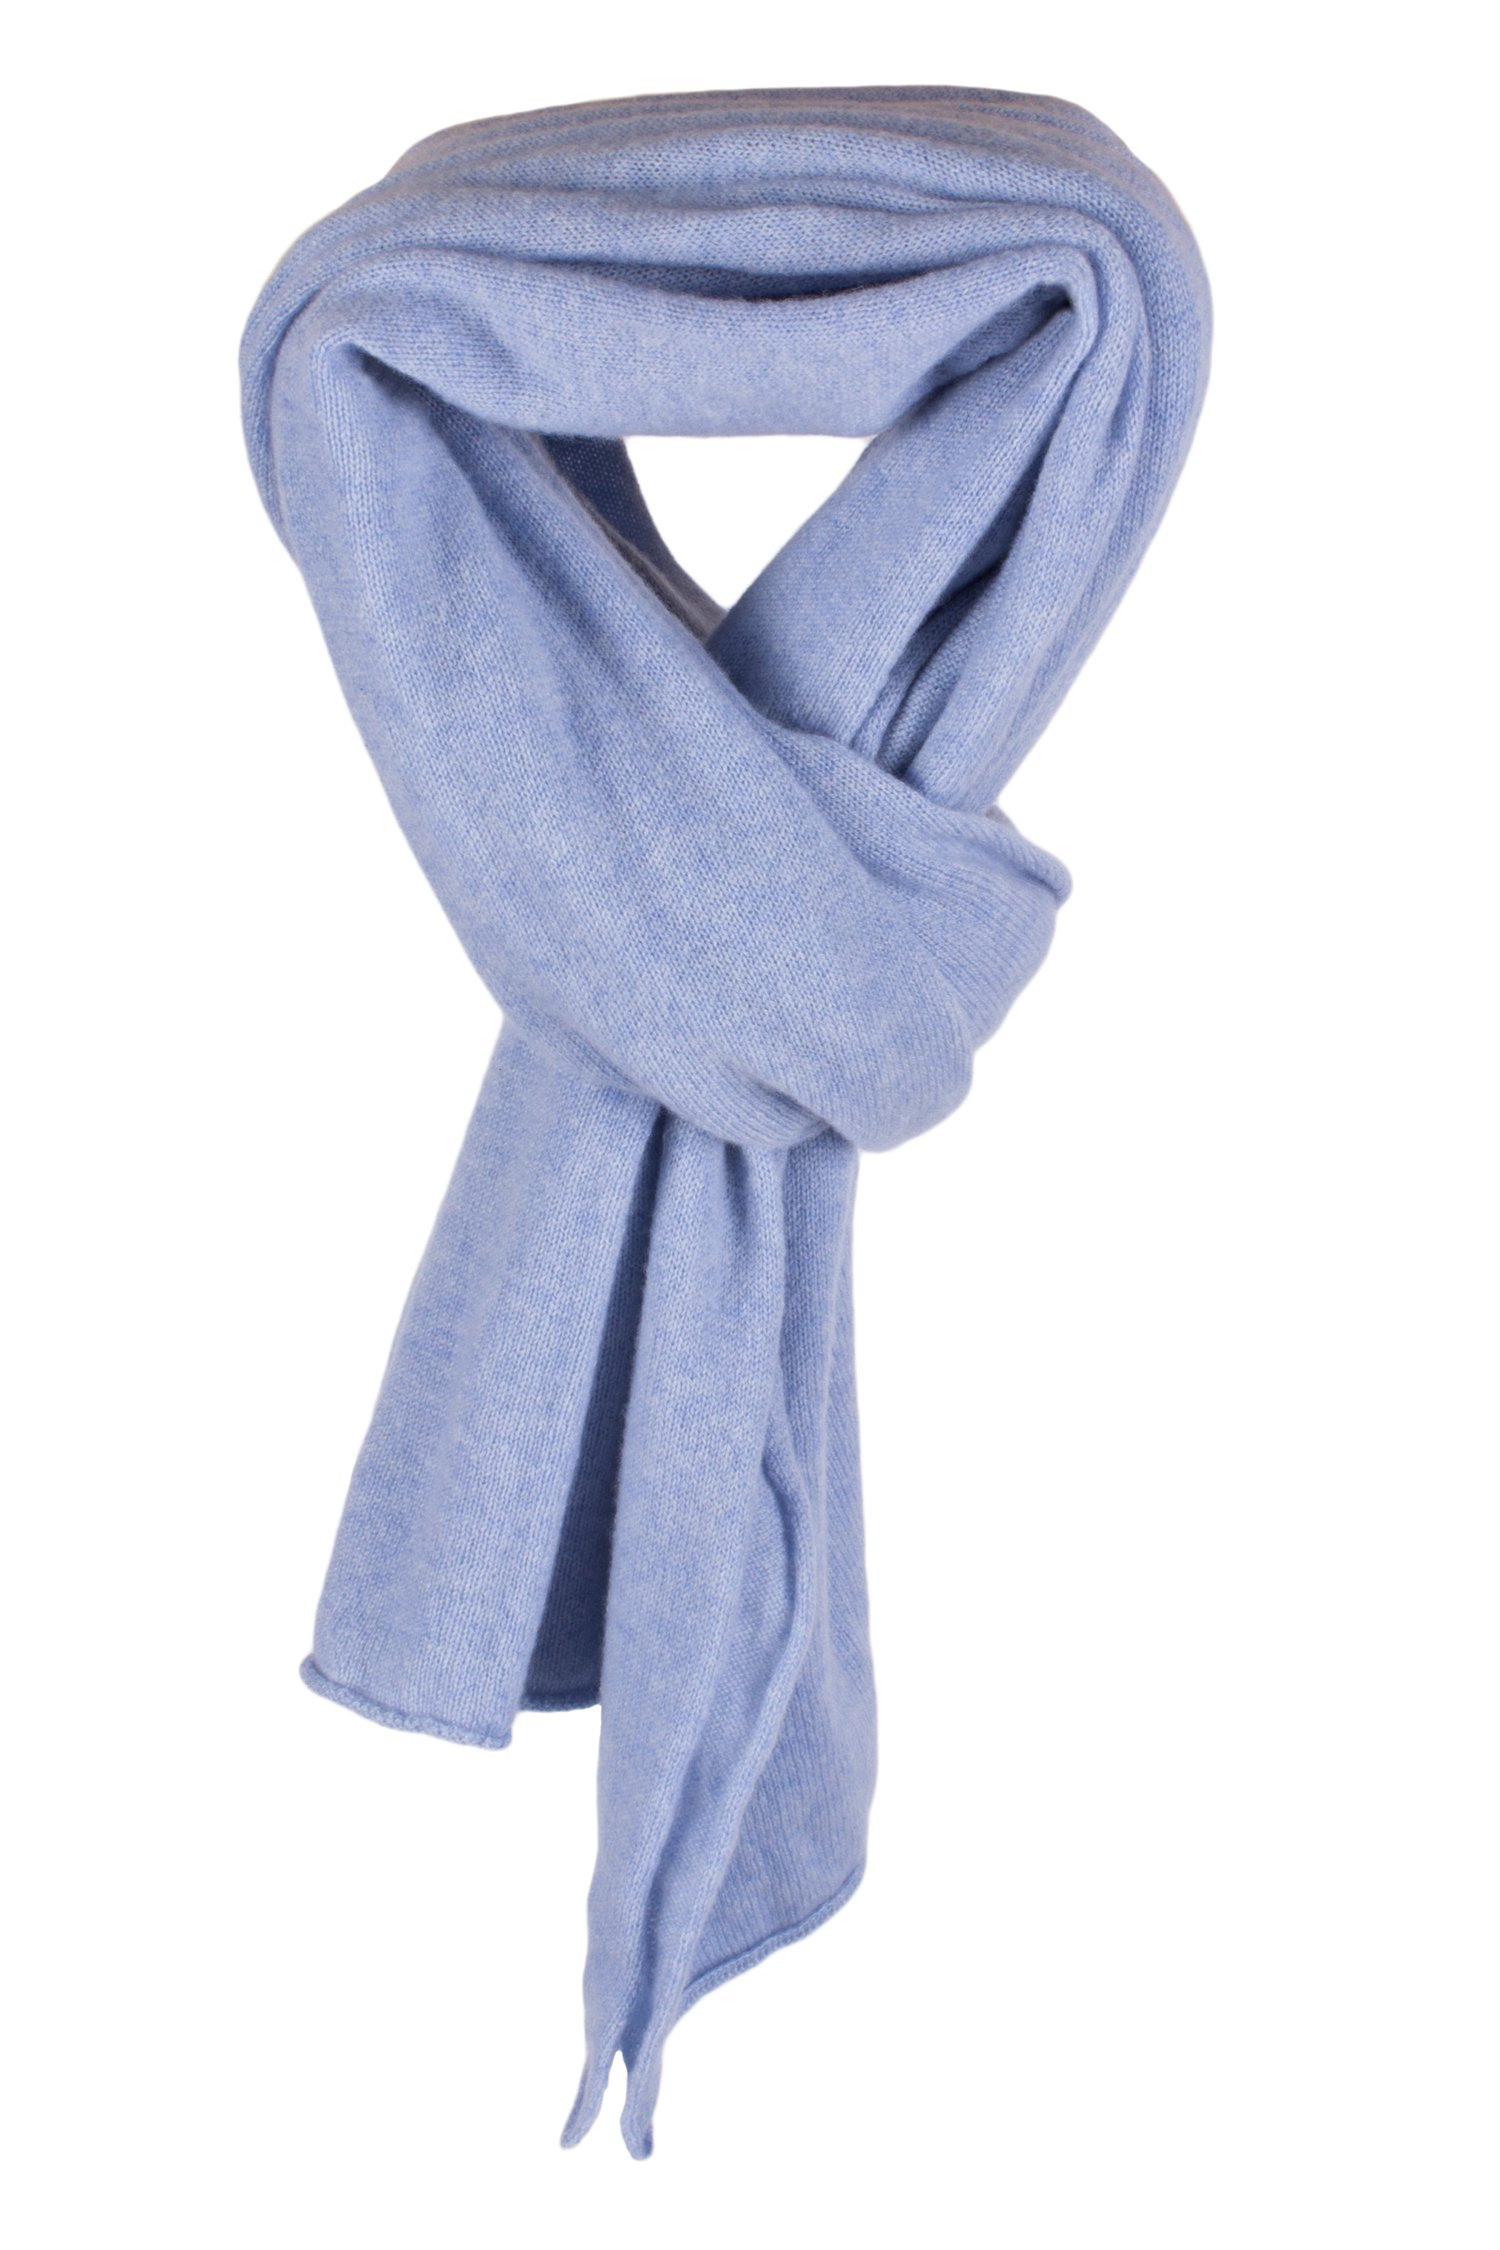 Ladies 100% Cashmere Wrap Scarf - Sky Blue - hand made in Scotland by Love Cashmere